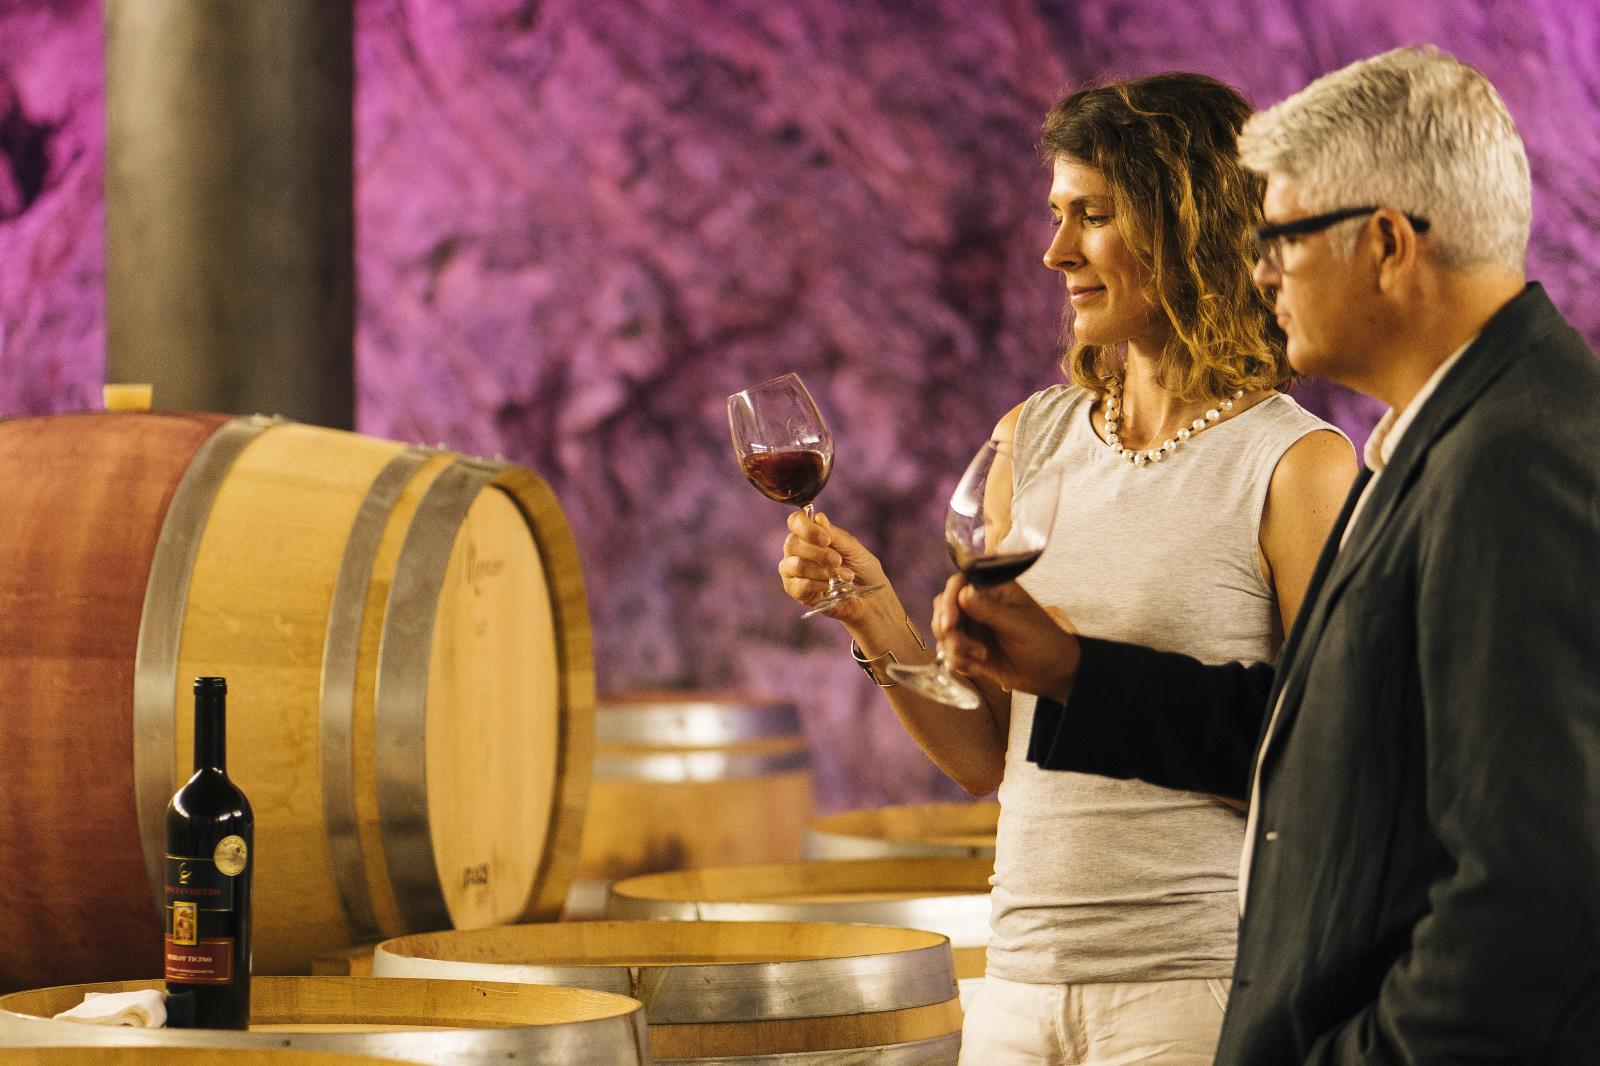 Gastronomy and traditions, Visit to the wine cellars of the Region